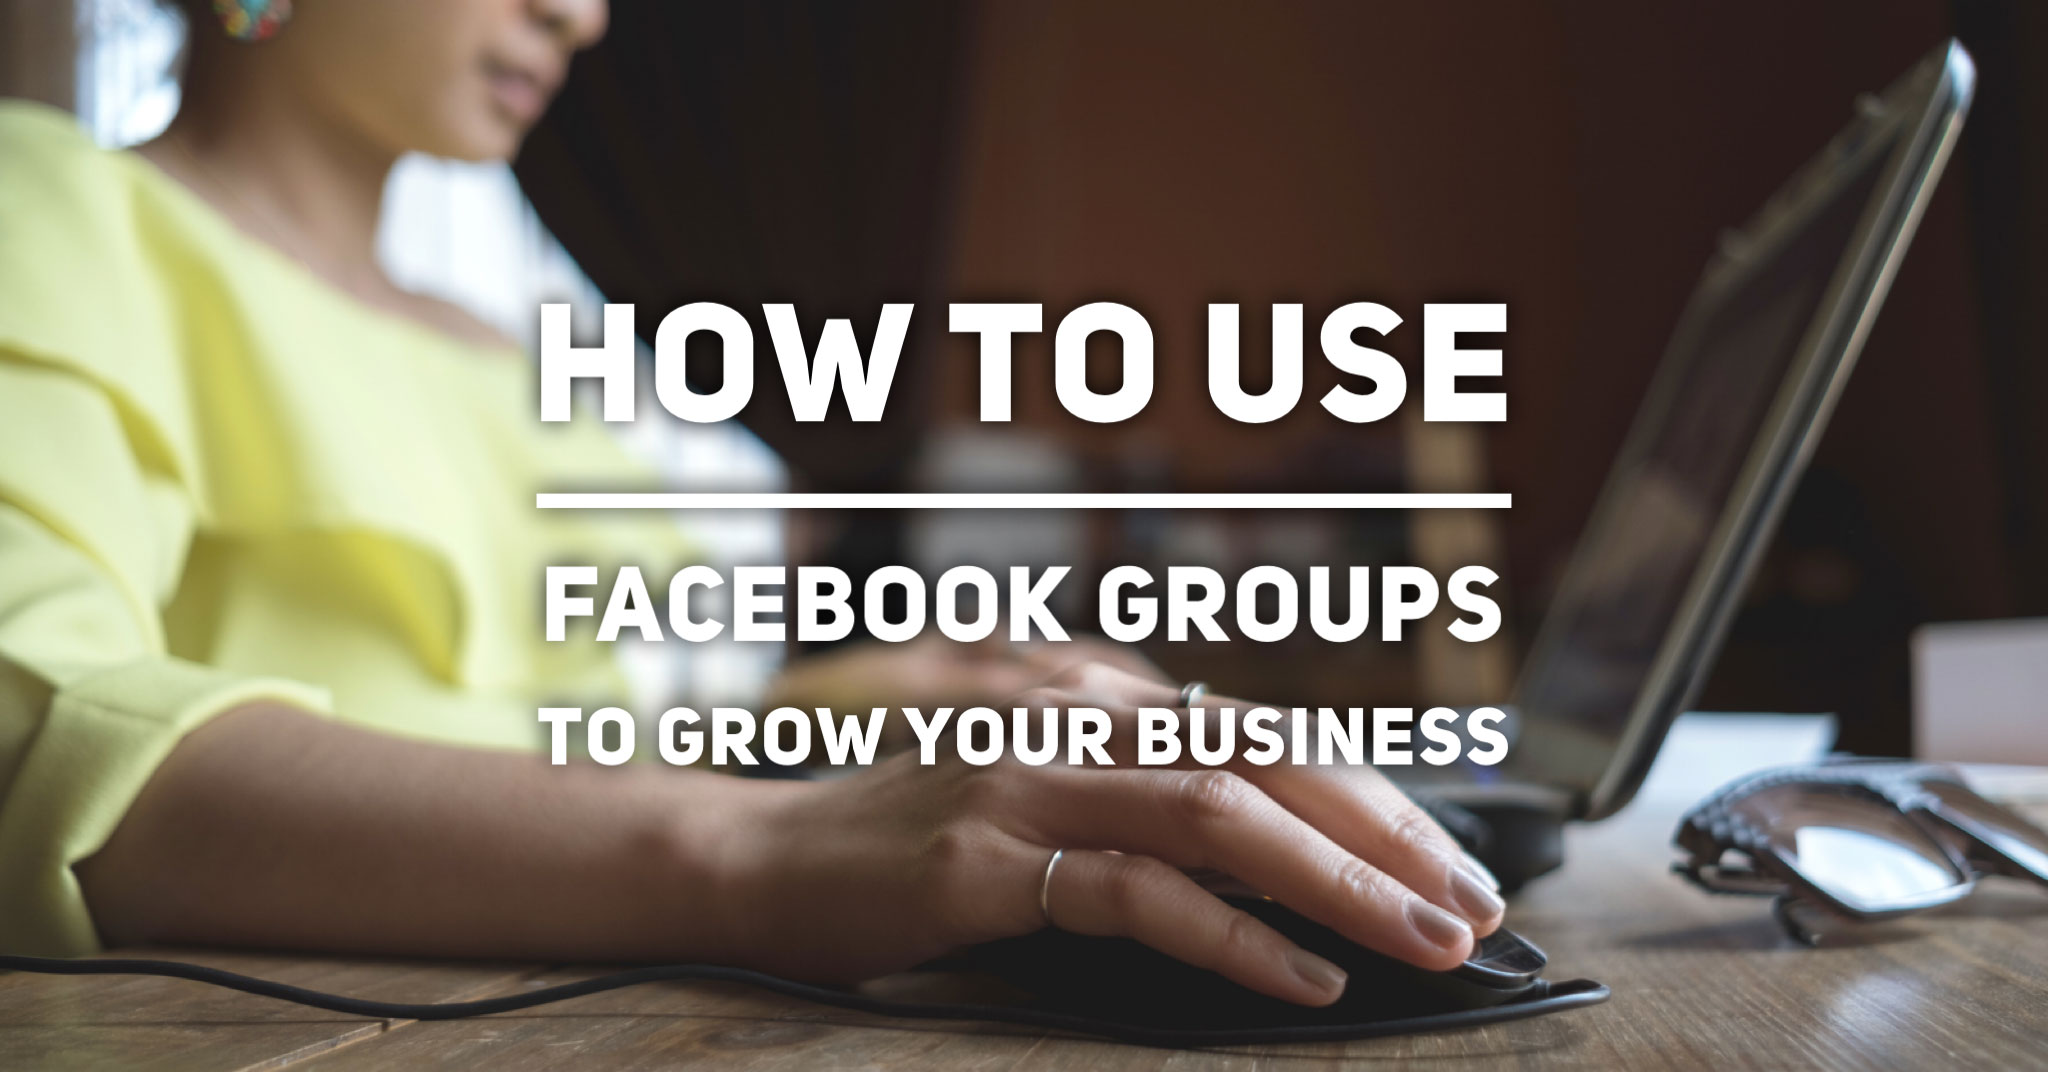 How to Use Facebook Groups for Small Business